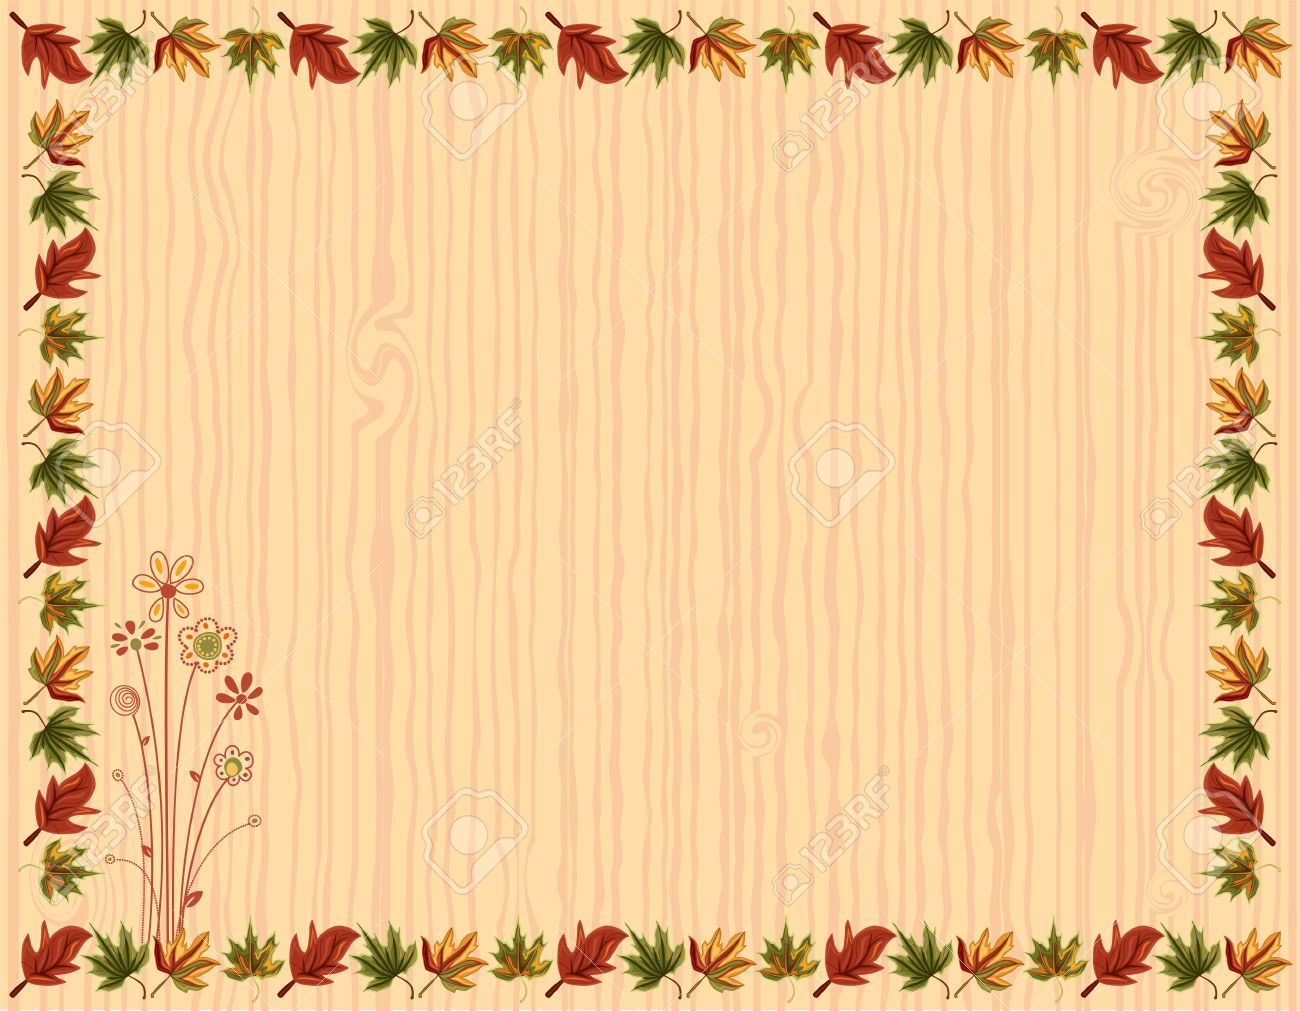 Christmas background free large images graphic design christmas background free large images graphic design pinterest backgrounds free christmas background images and christmas wallpaper m4hsunfo